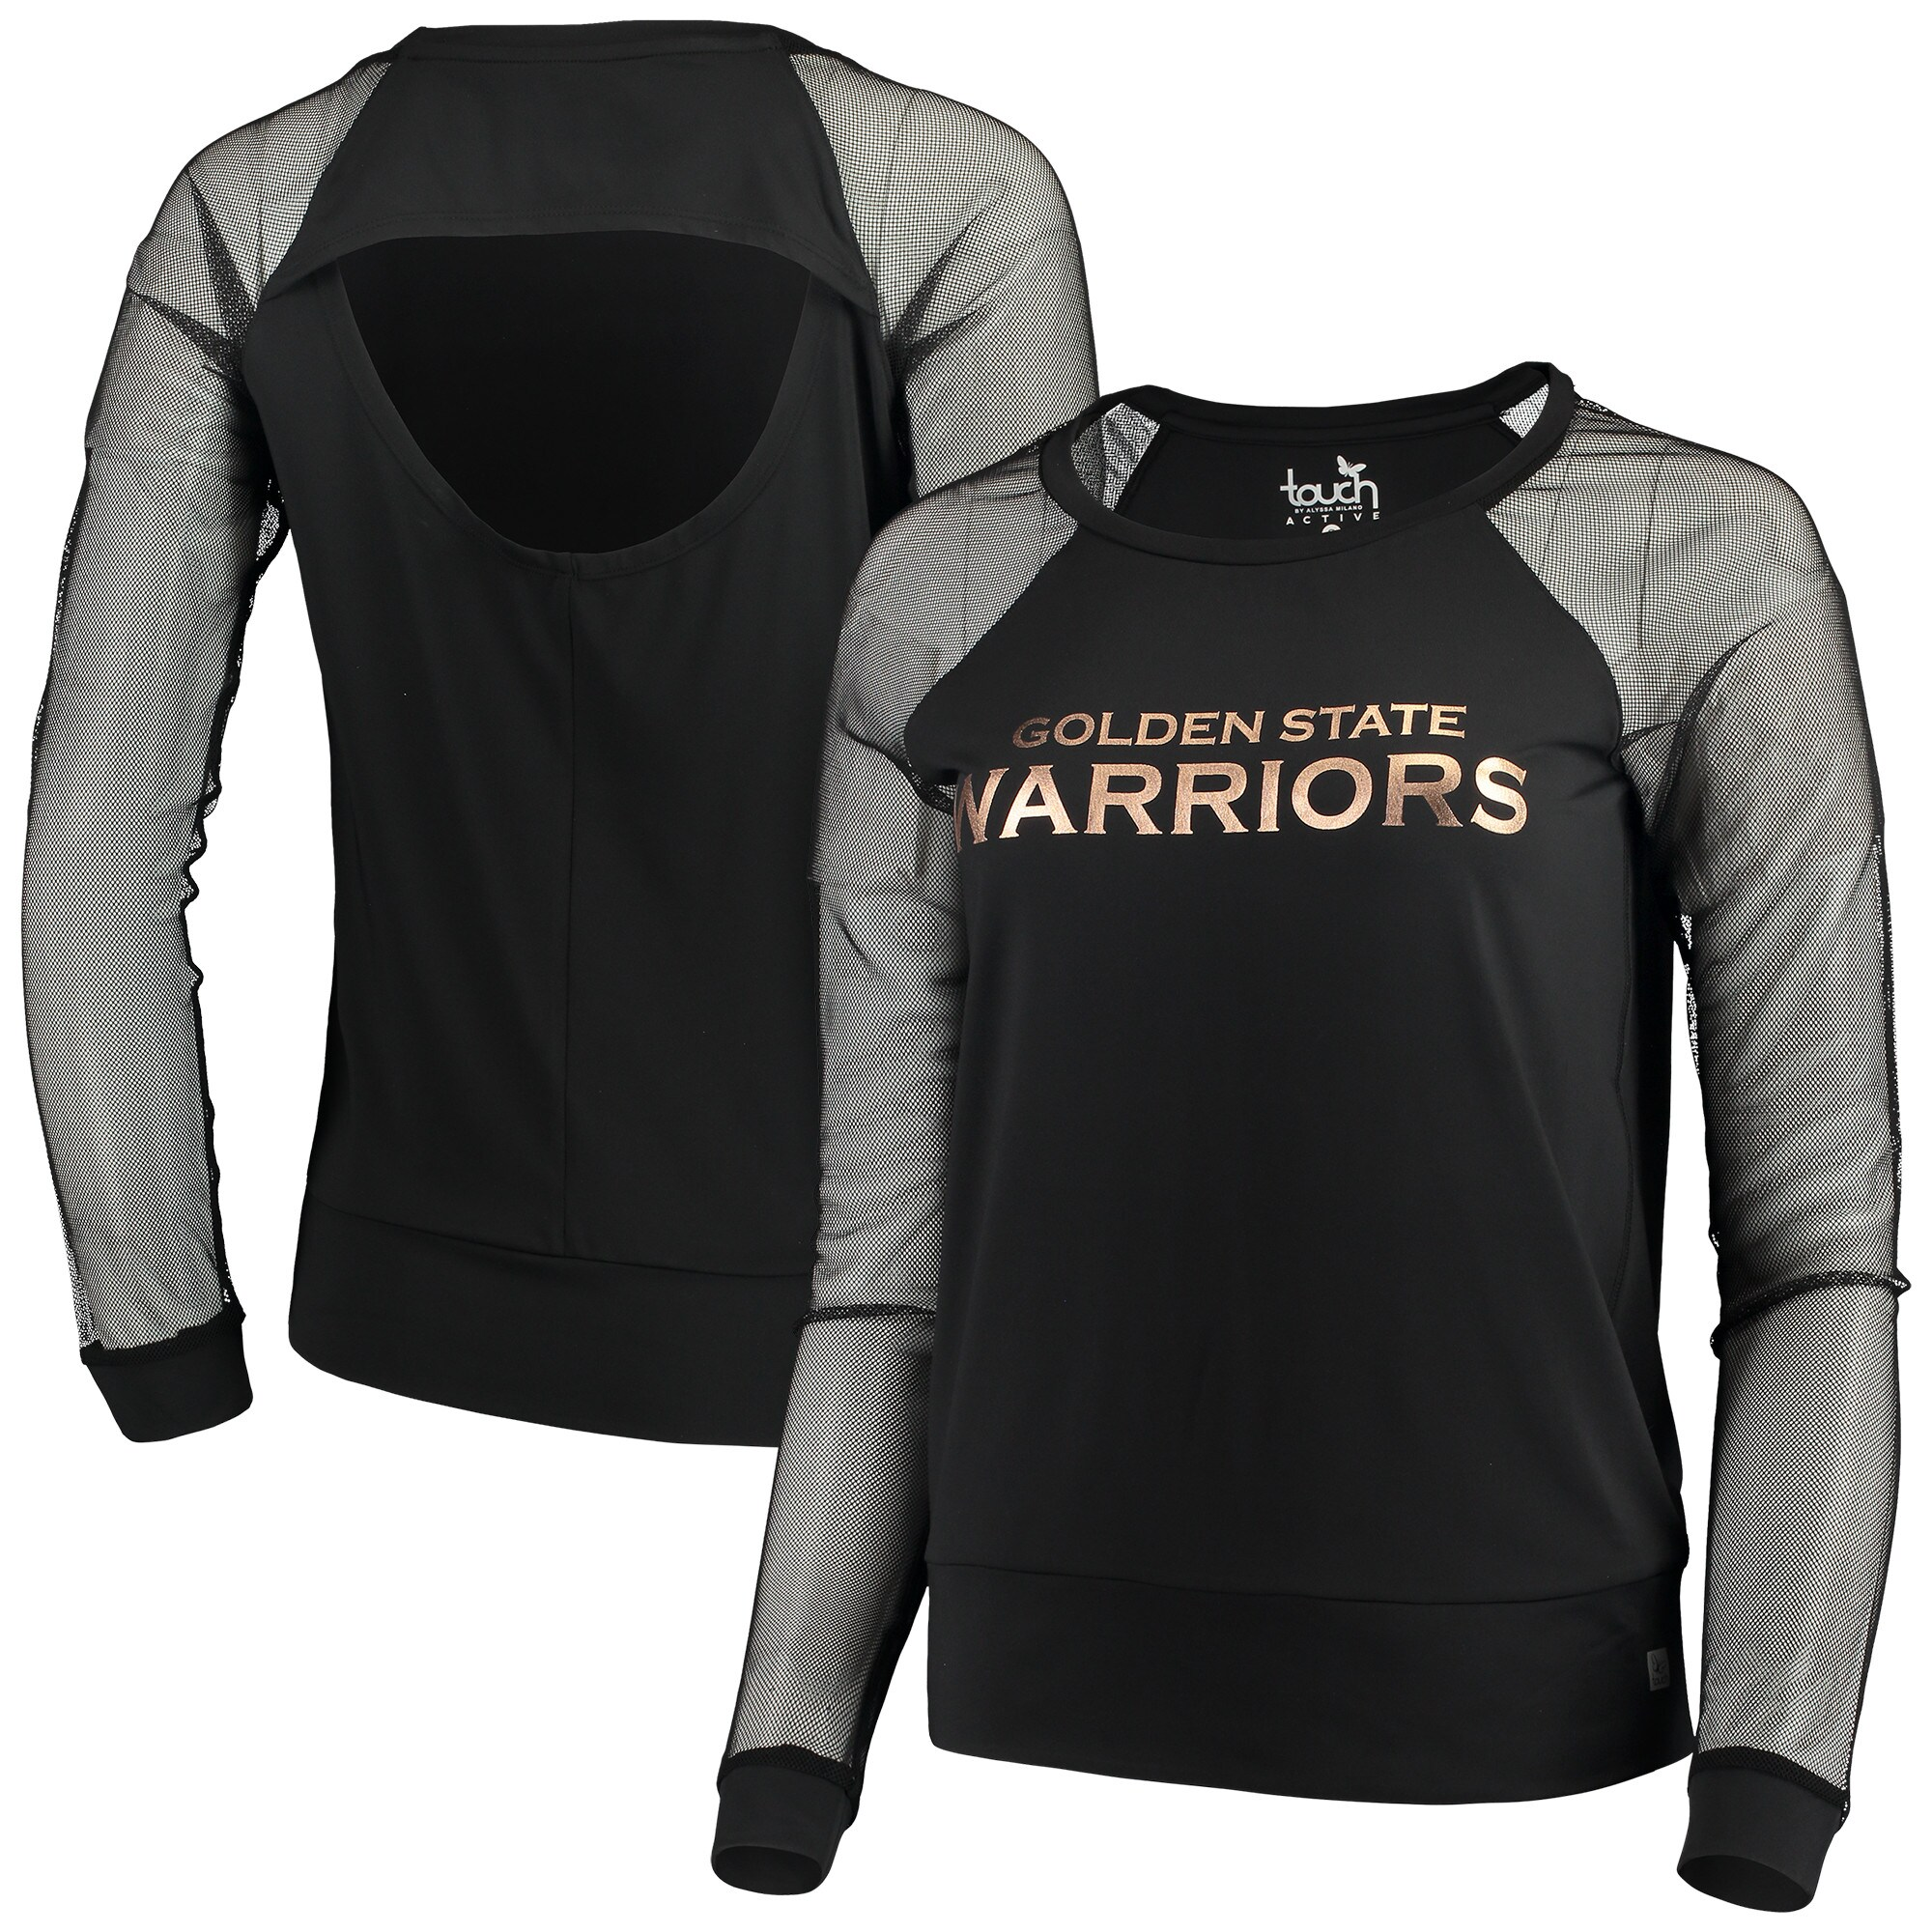 Golden State Warriors Touch by Alyssa Milano Women's Make the Cut Long Sleeve Top - Black